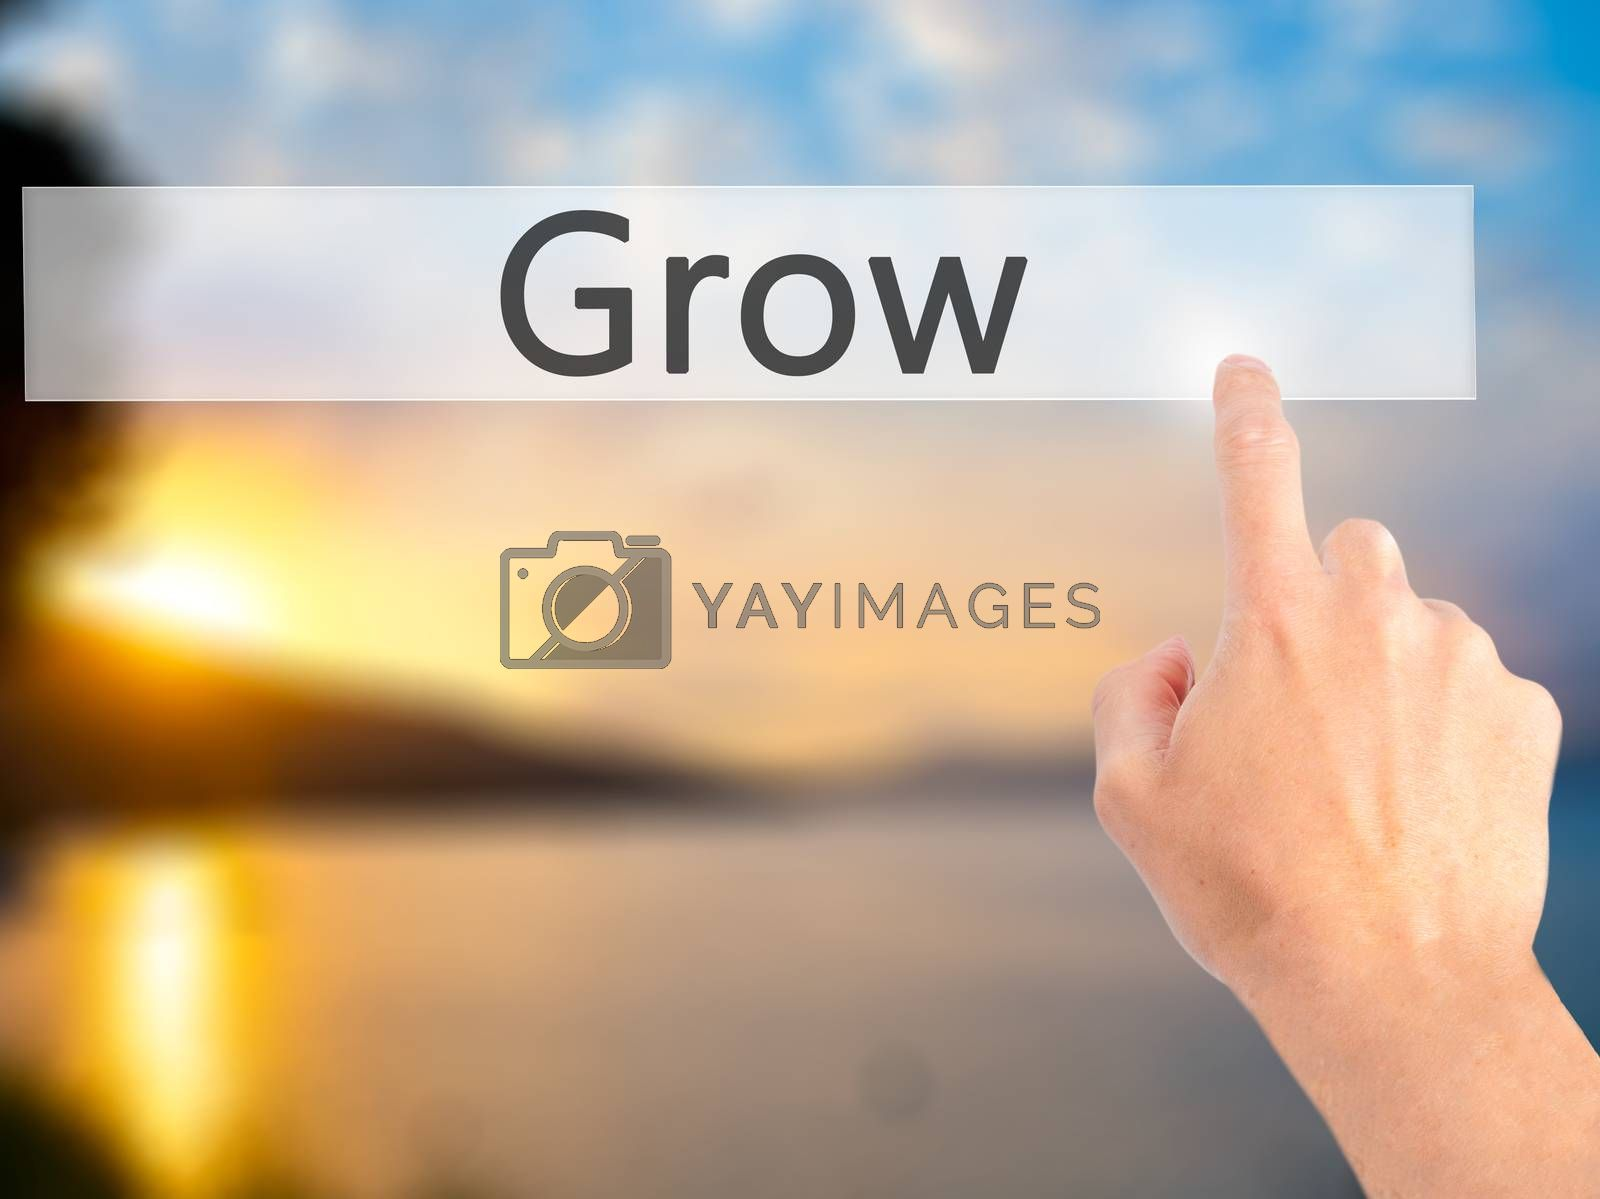 Grow - Hand pressing a button on blurred background concept on v by jackald